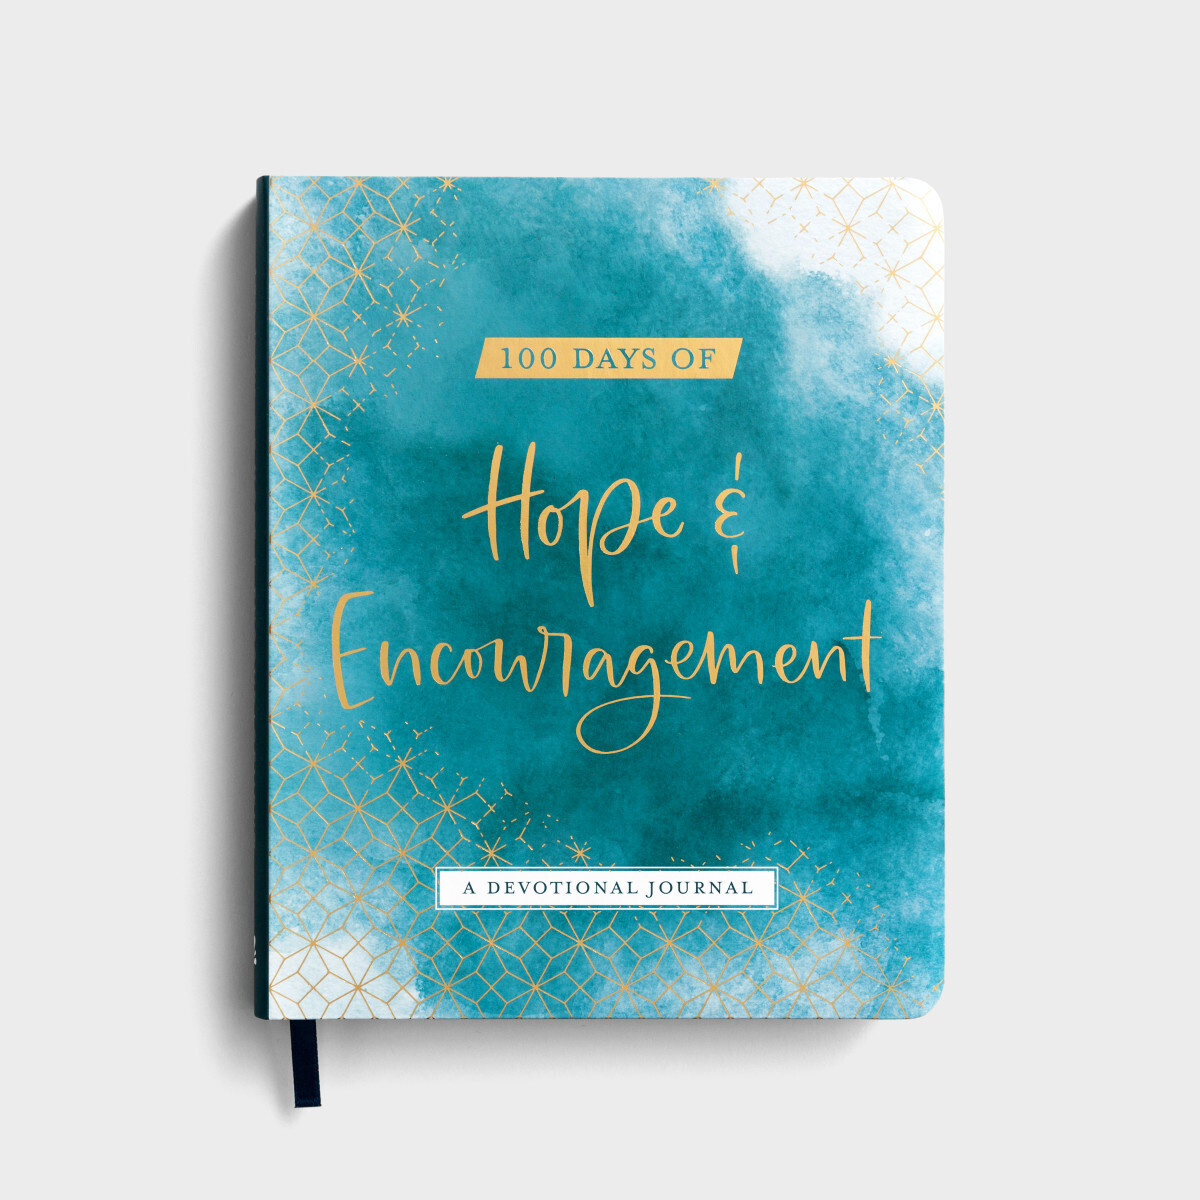 100 Days of Hope and Encouragement